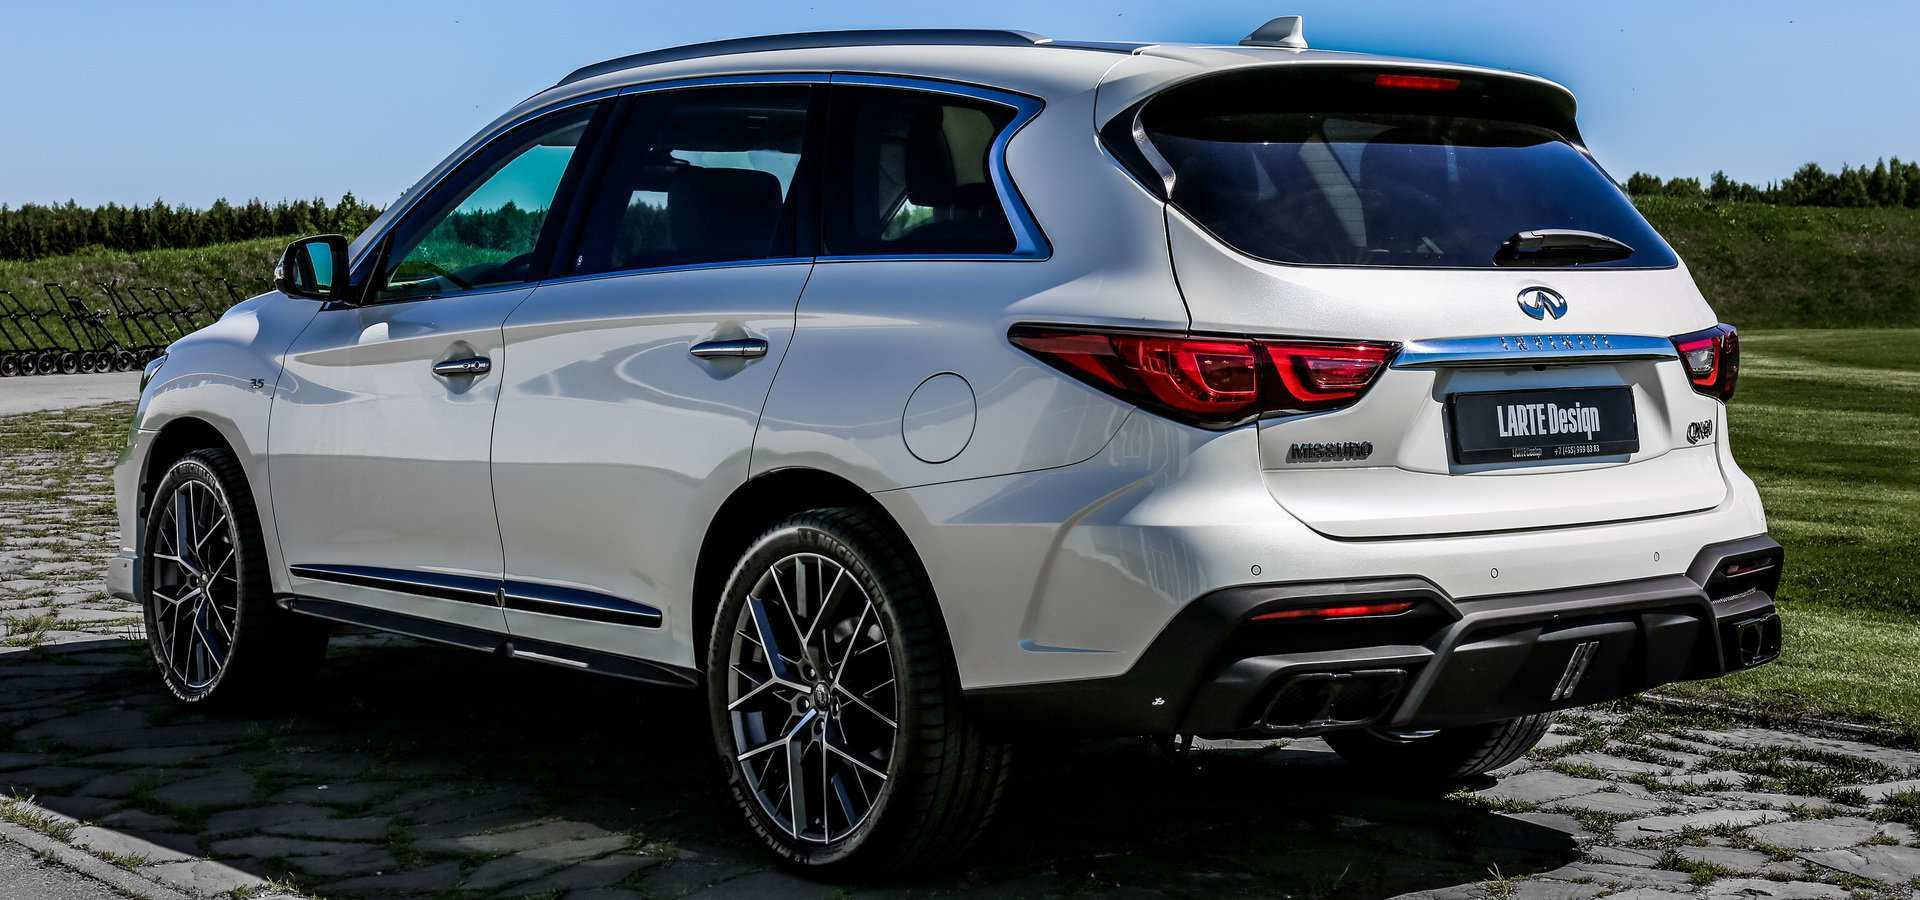 48 Great 2020 Qx60 Speed Test by 2020 Qx60